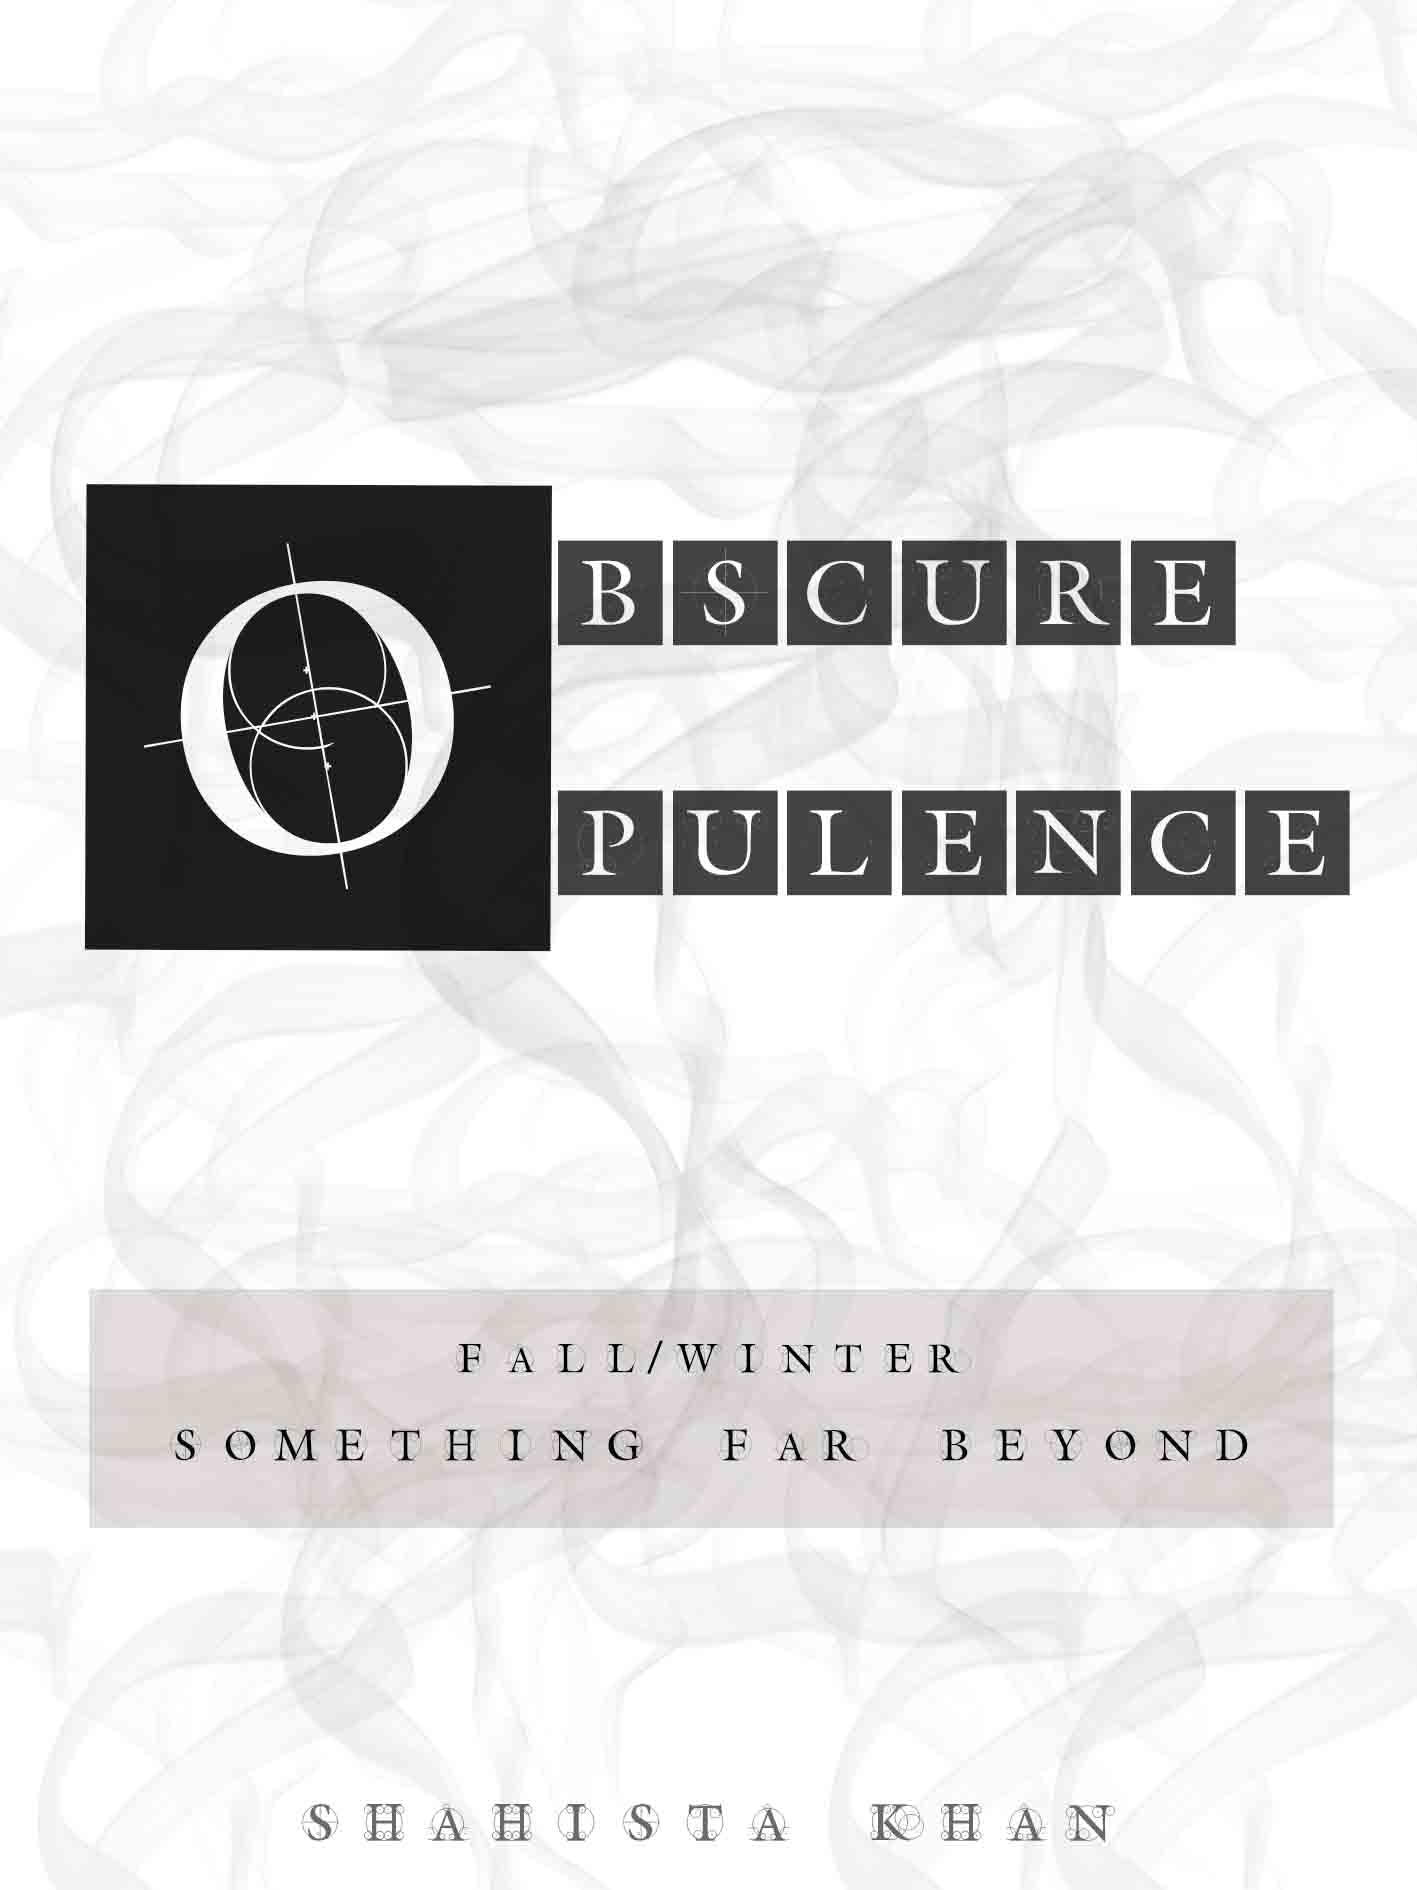 OBSCURE OPULENCE- COLLECTION DESIGN